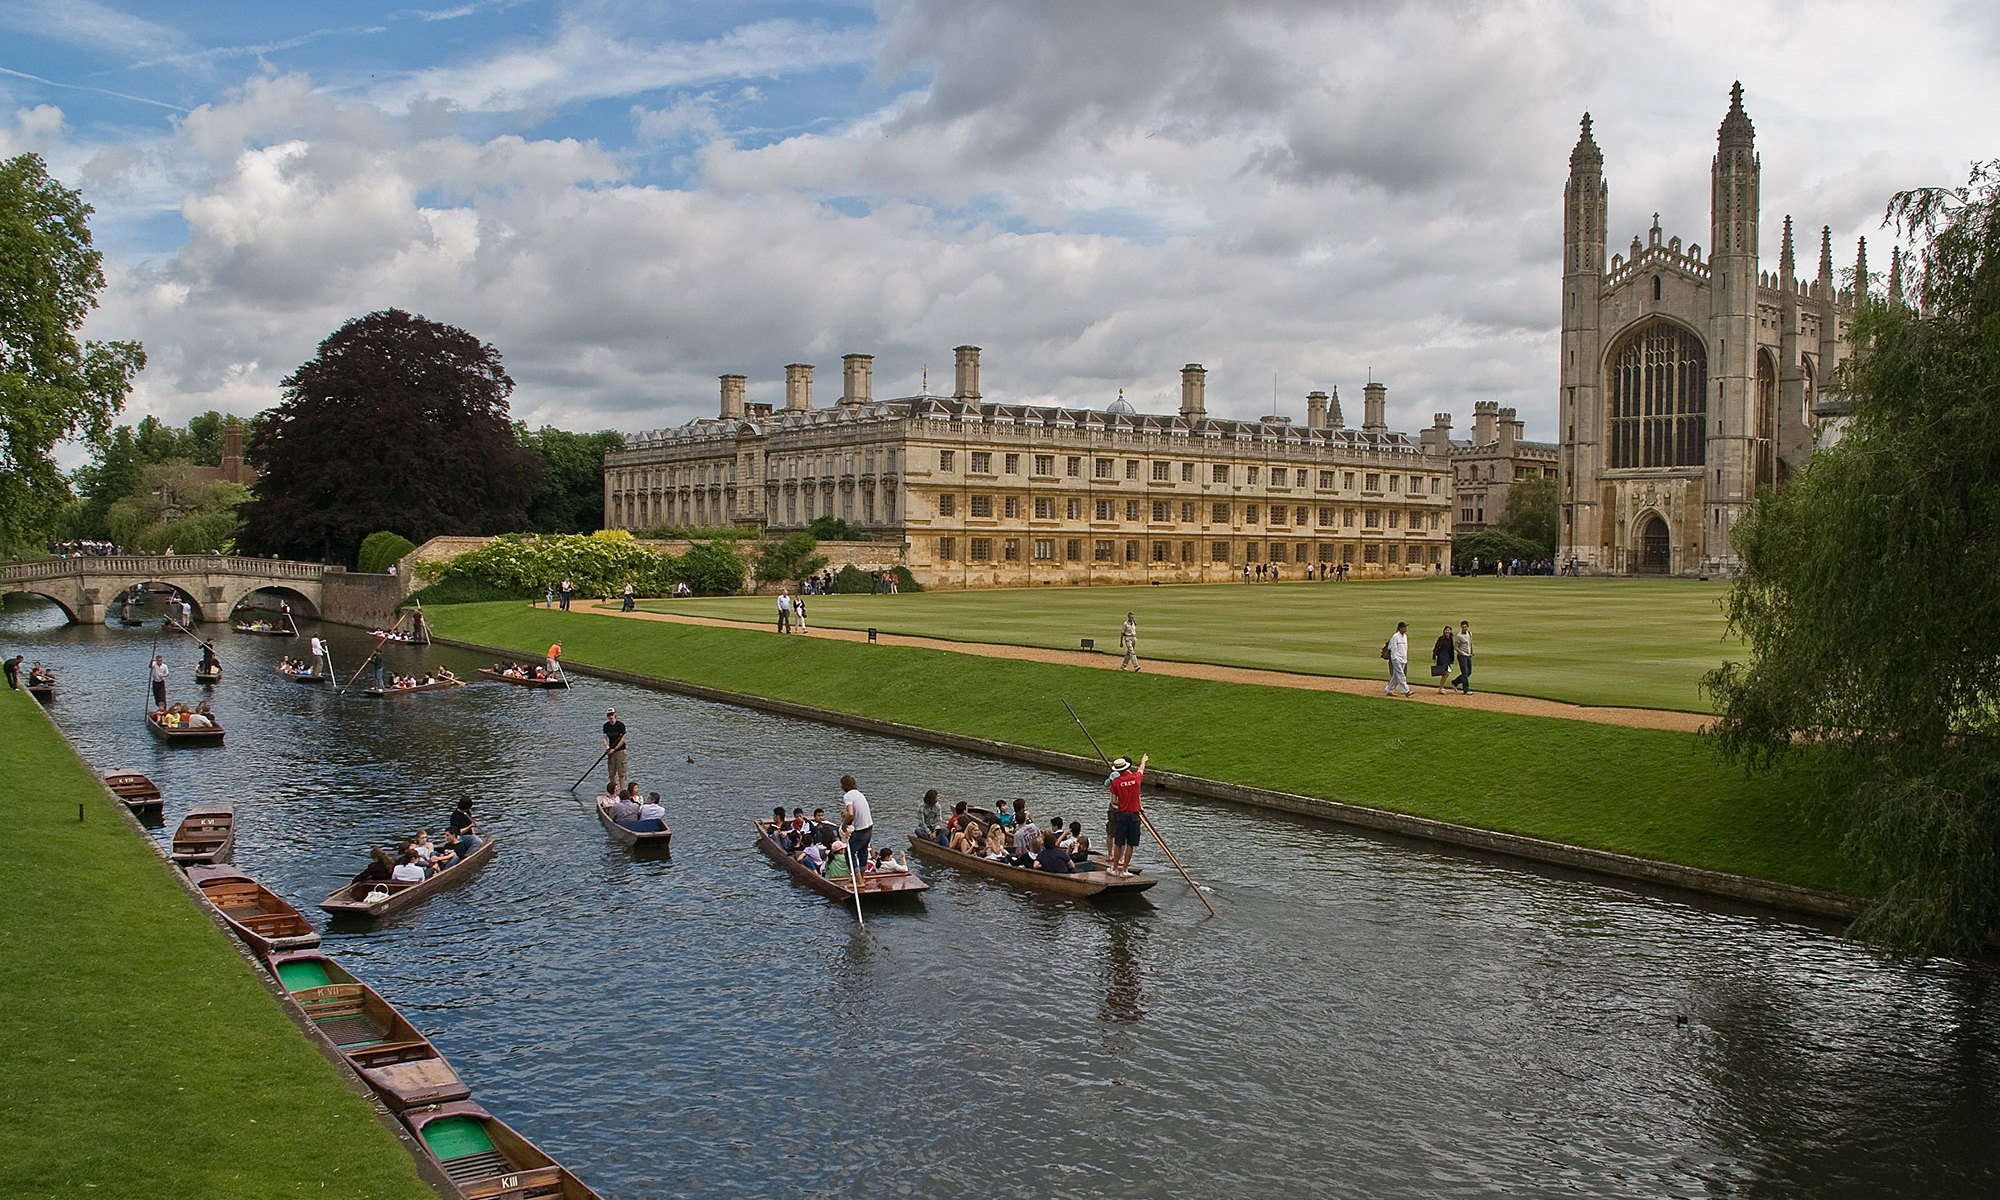 King's College from The Backs - Cambridge